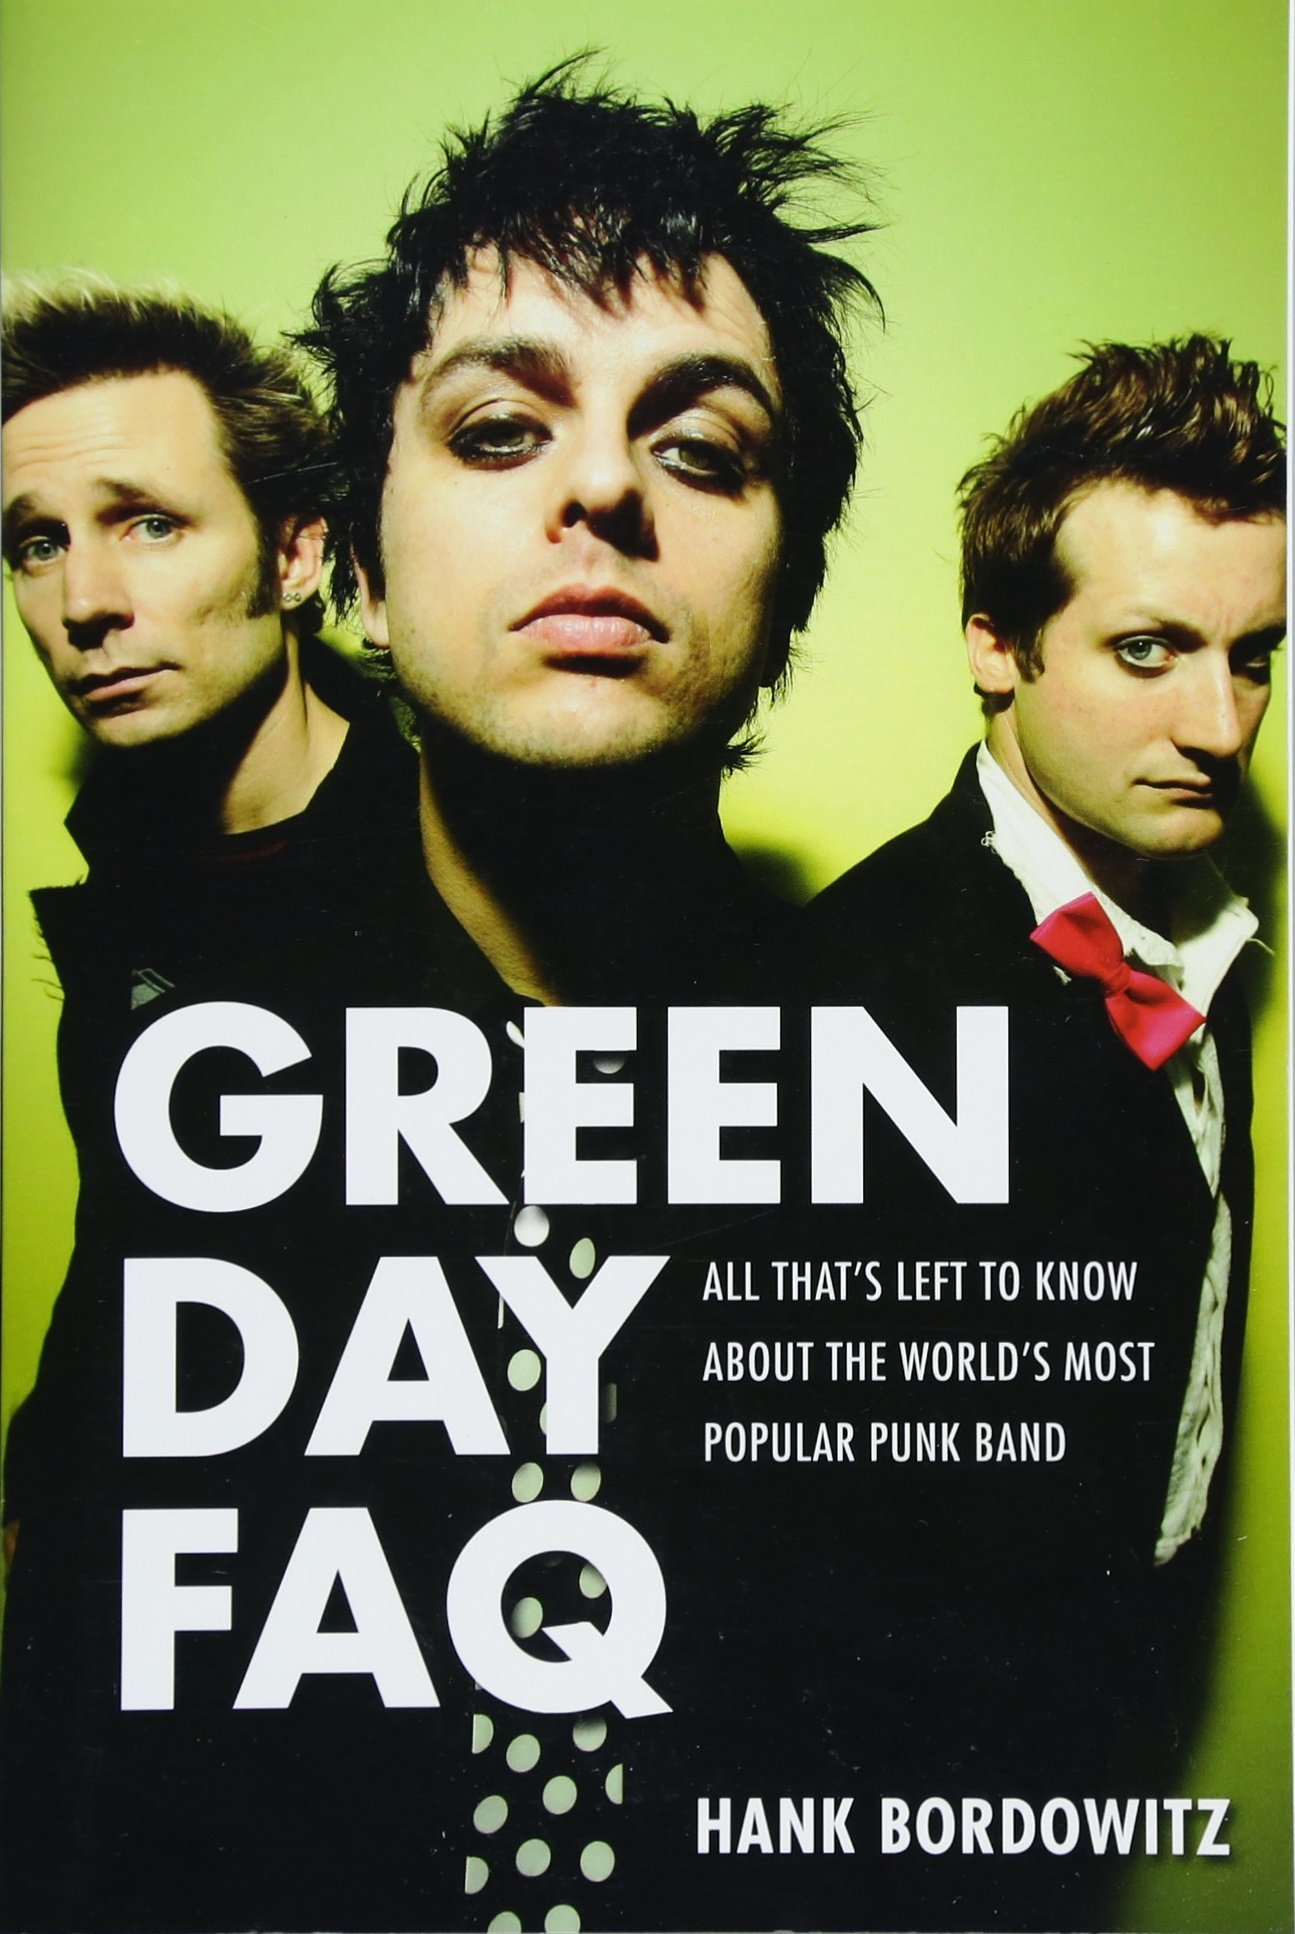 Download Green Day FAQ: All That's Left to Know About the World's Most Popular Punk Band pdf